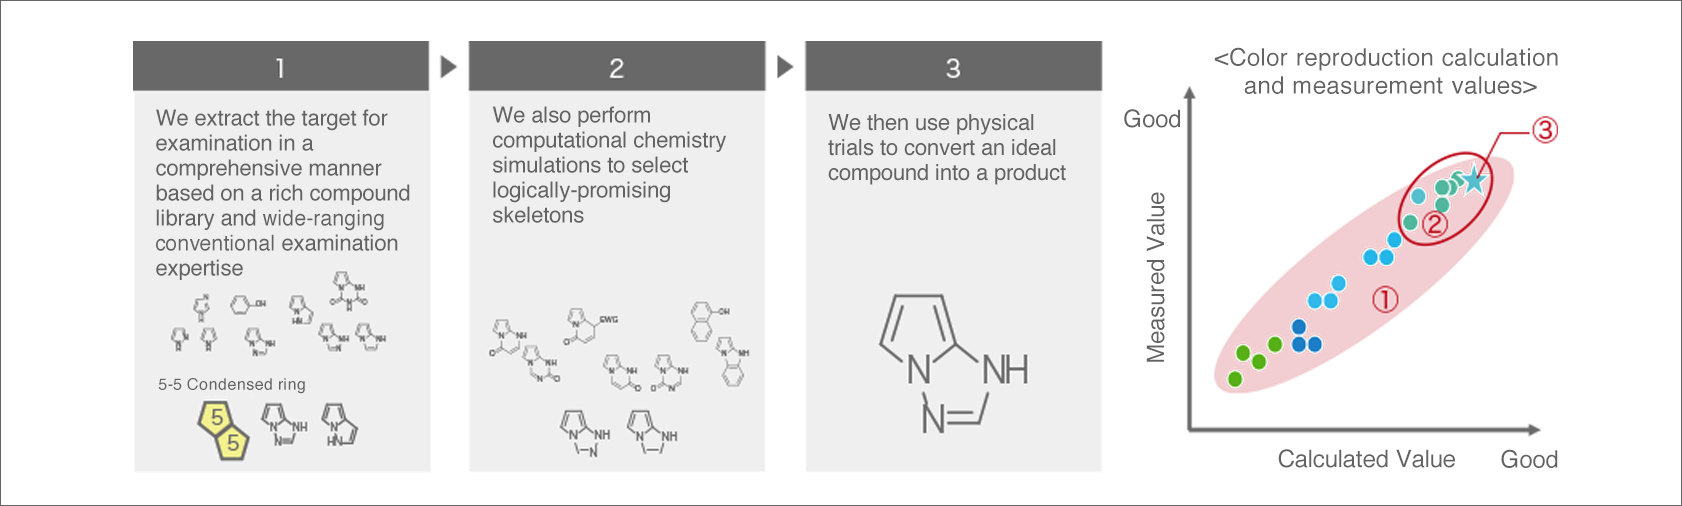 [image] Example of Molecular Design for Dyes with Strong Color Replicability